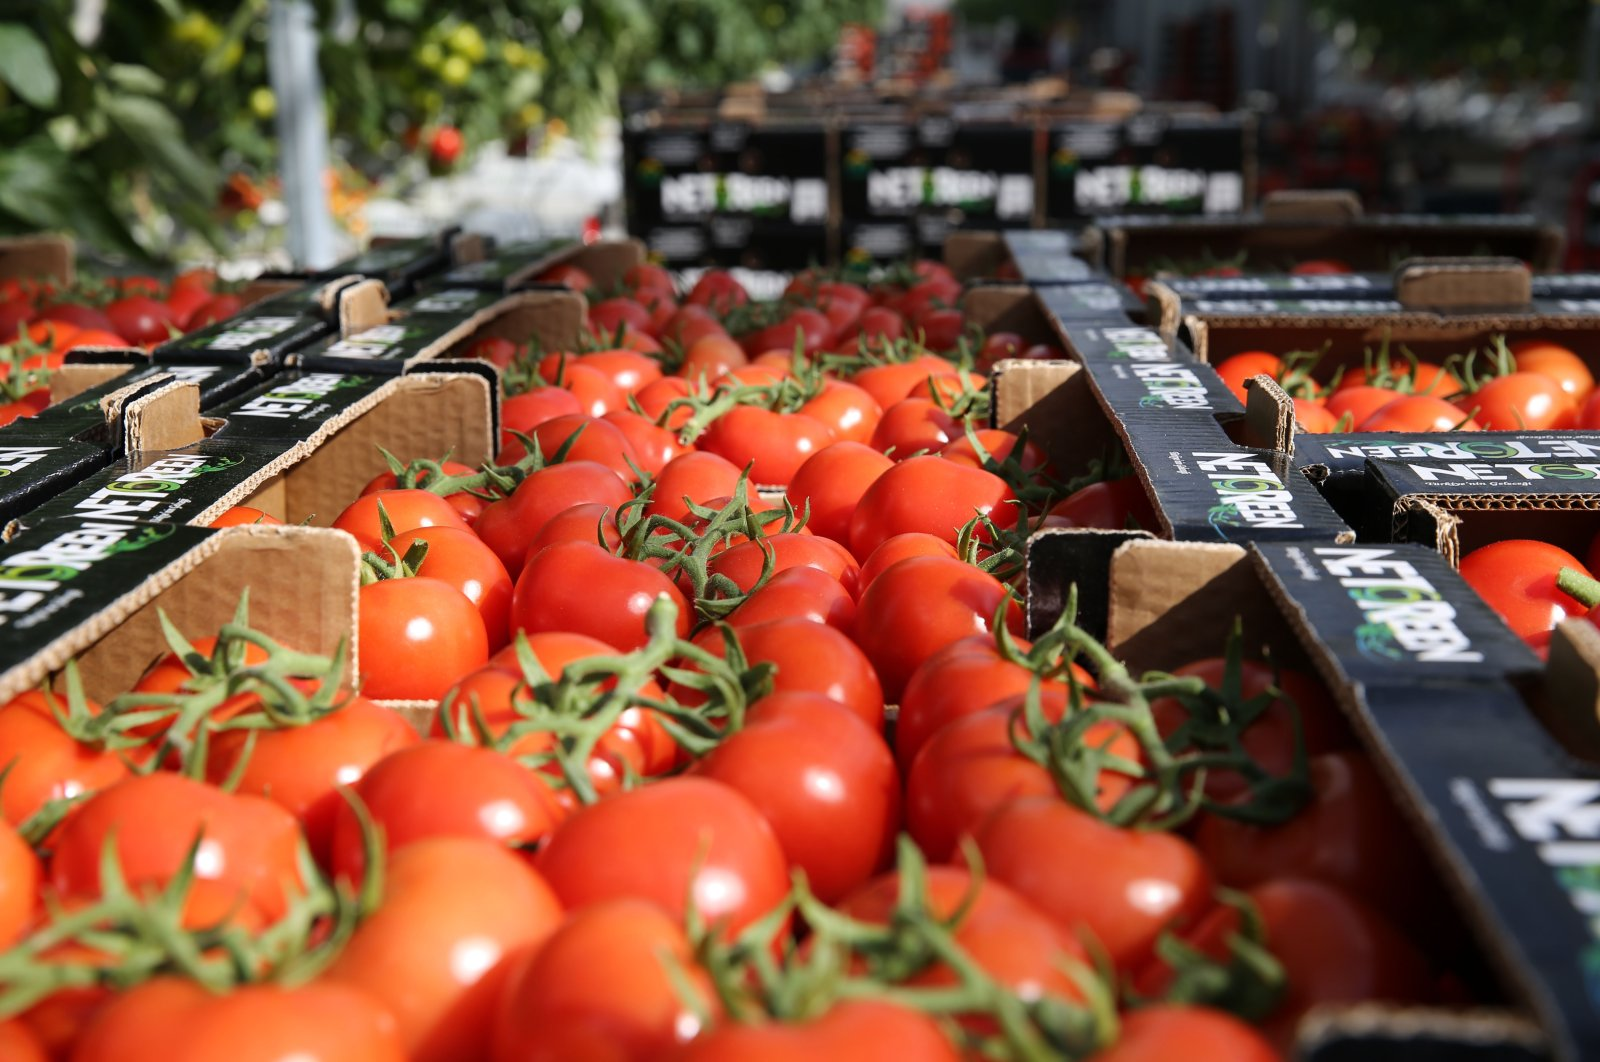 Tomatoes grown in a geothermal greenhouse being packed for delivery, Sivas, central Turkey, March 30, 2021. (AA Photo)